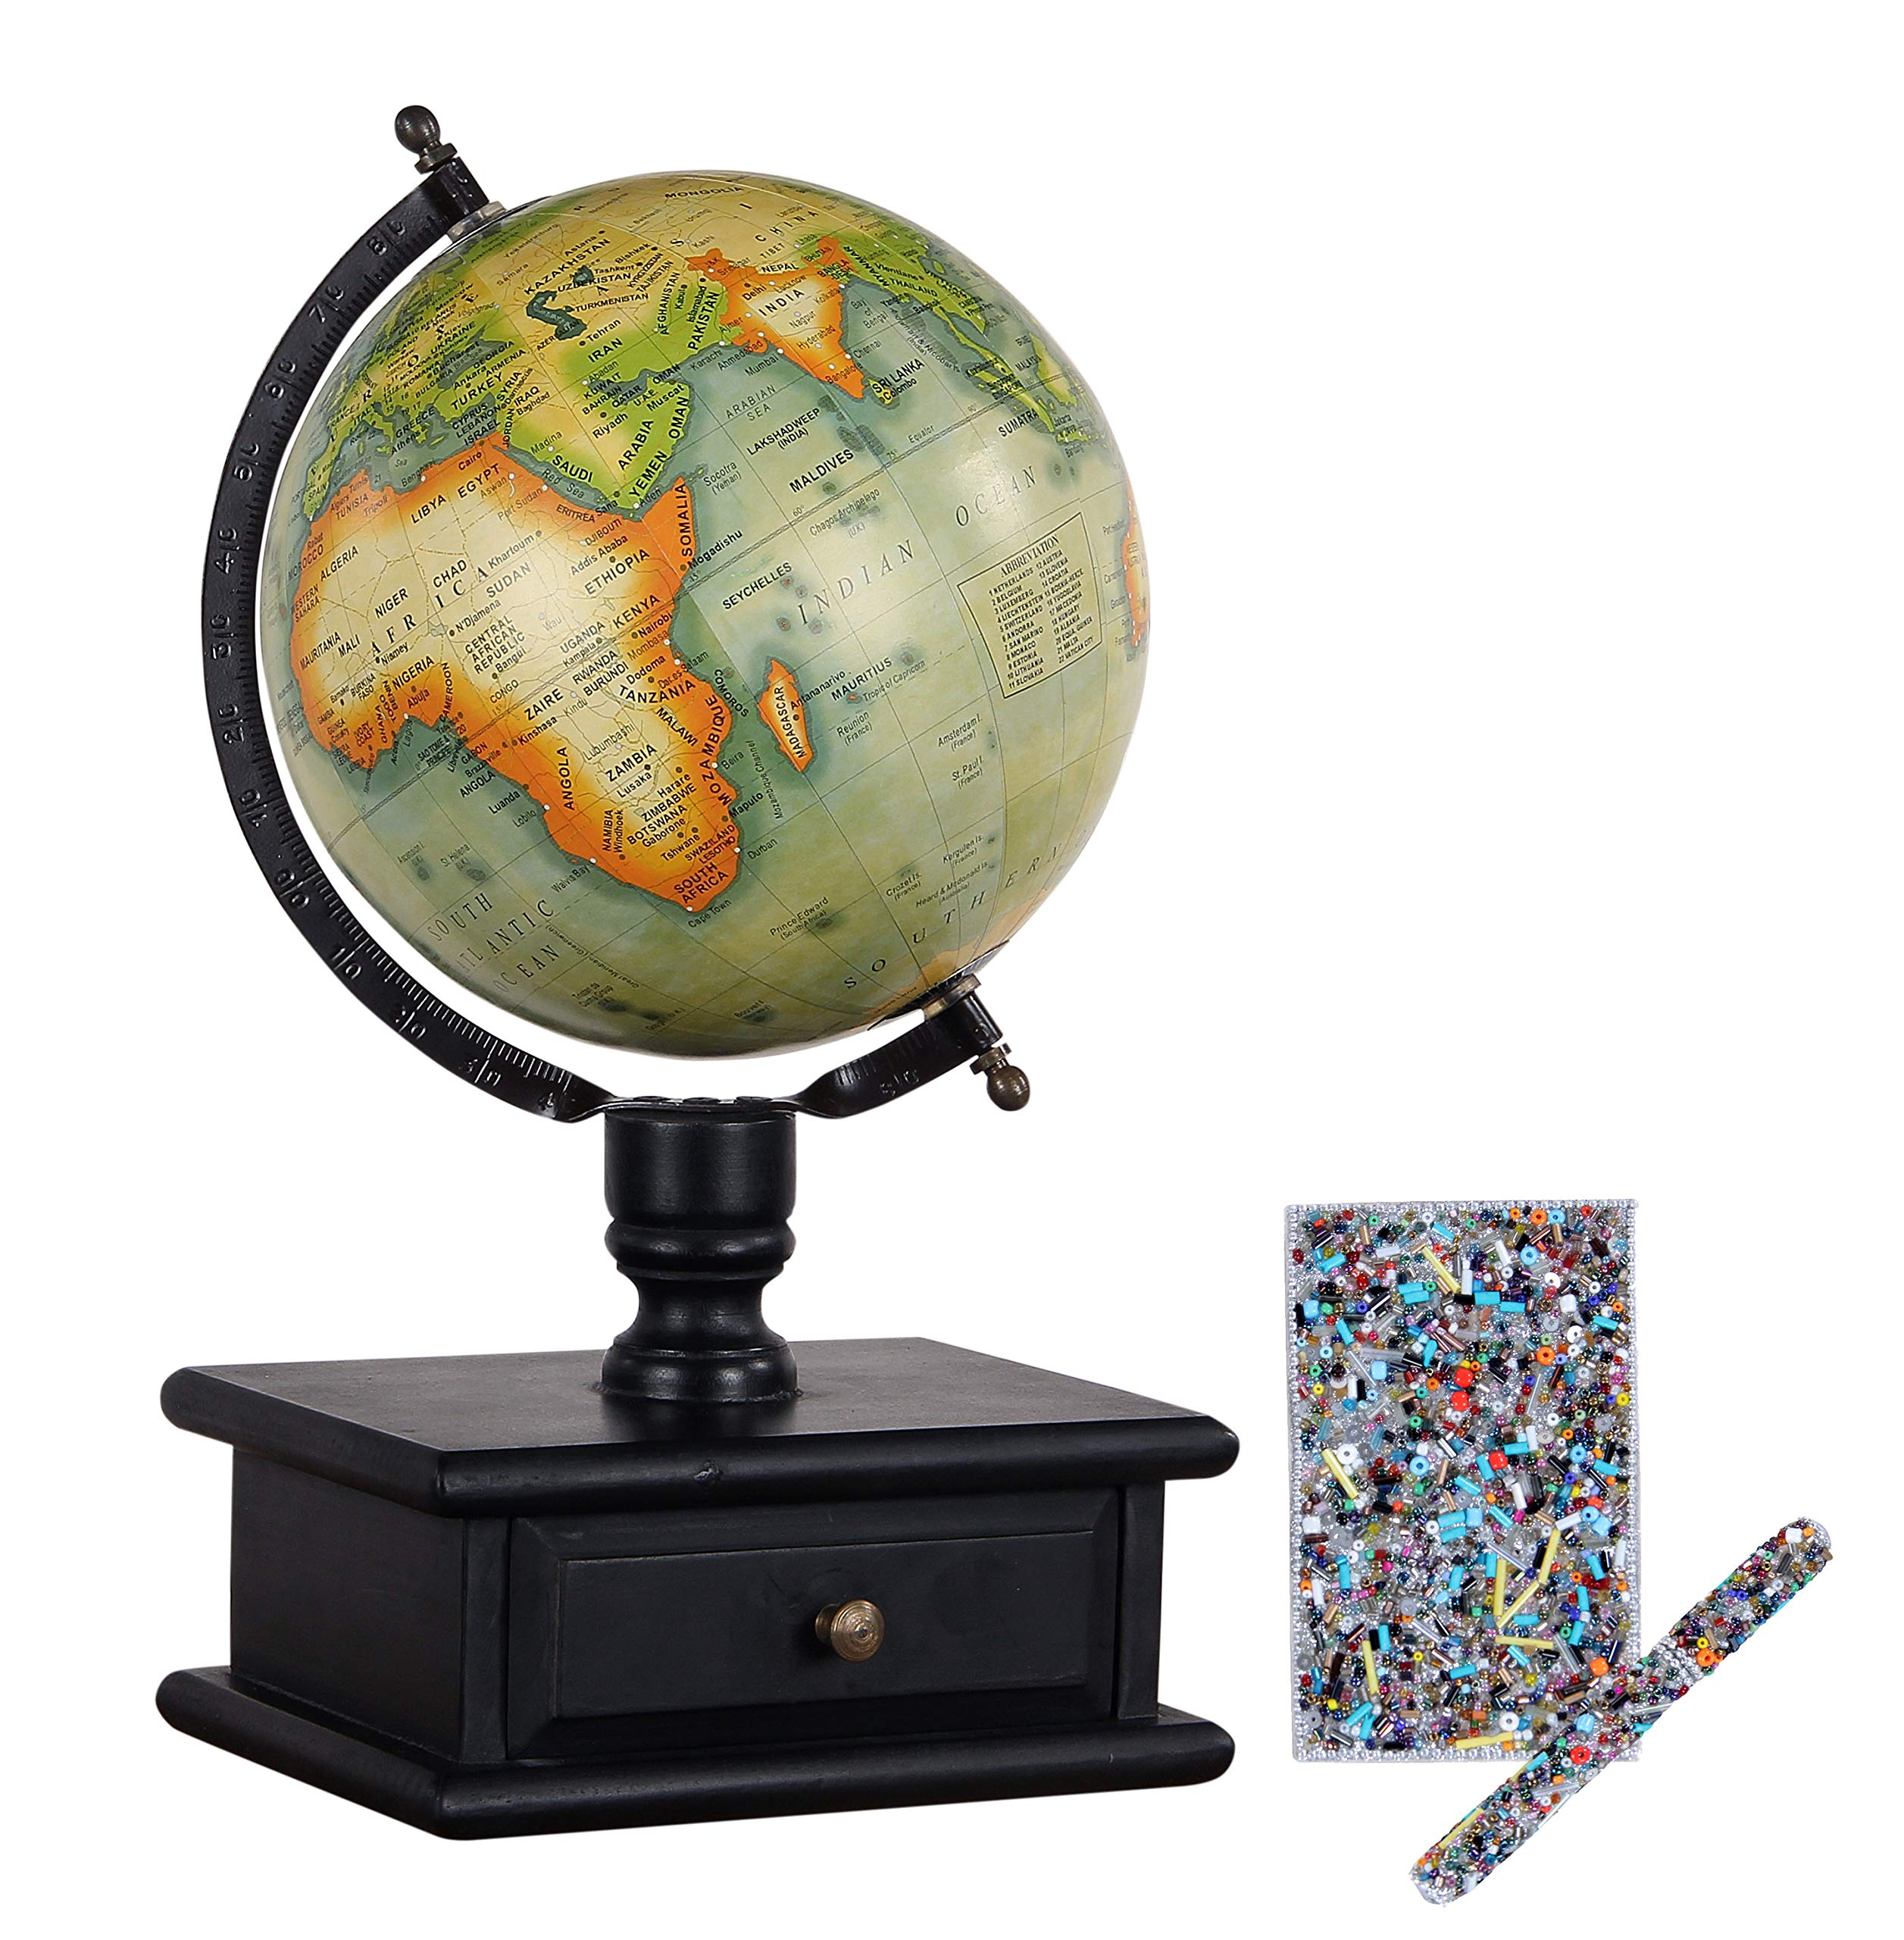 Decoriny Kandy Vintage Wooden Storage Drawer Globe with Decorative Pen and Diary Set Globe, Green